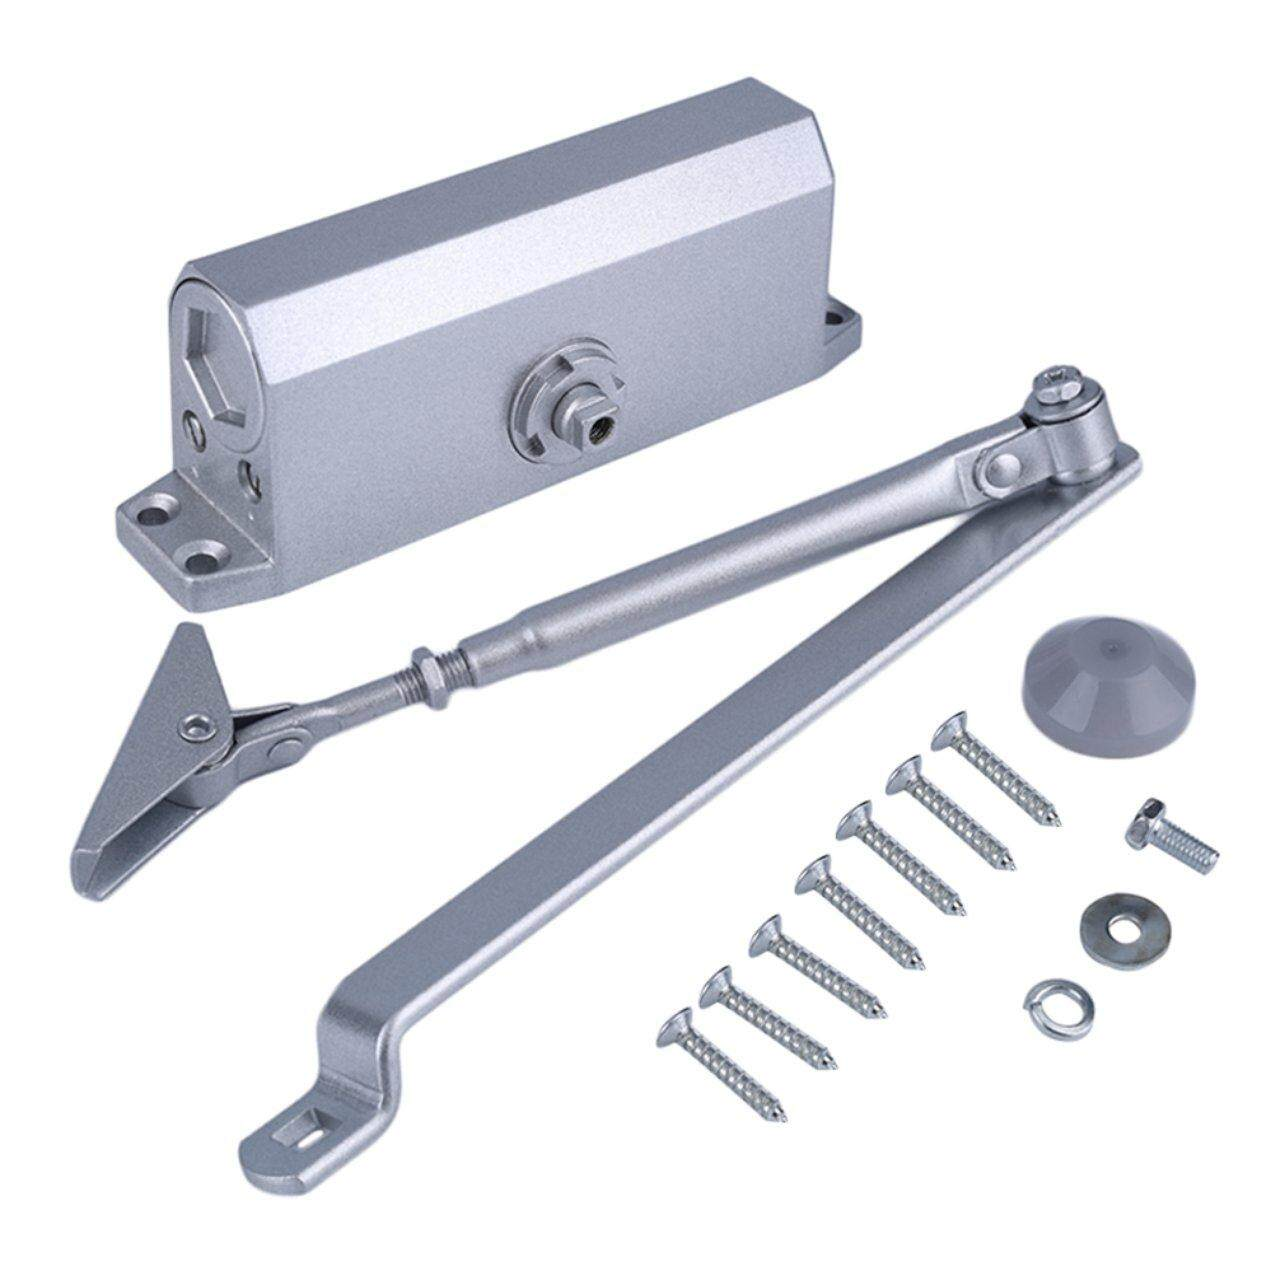 Hot Sales 068 Home Office Adjustable Overhead Left or Right Hand Square Door Closer